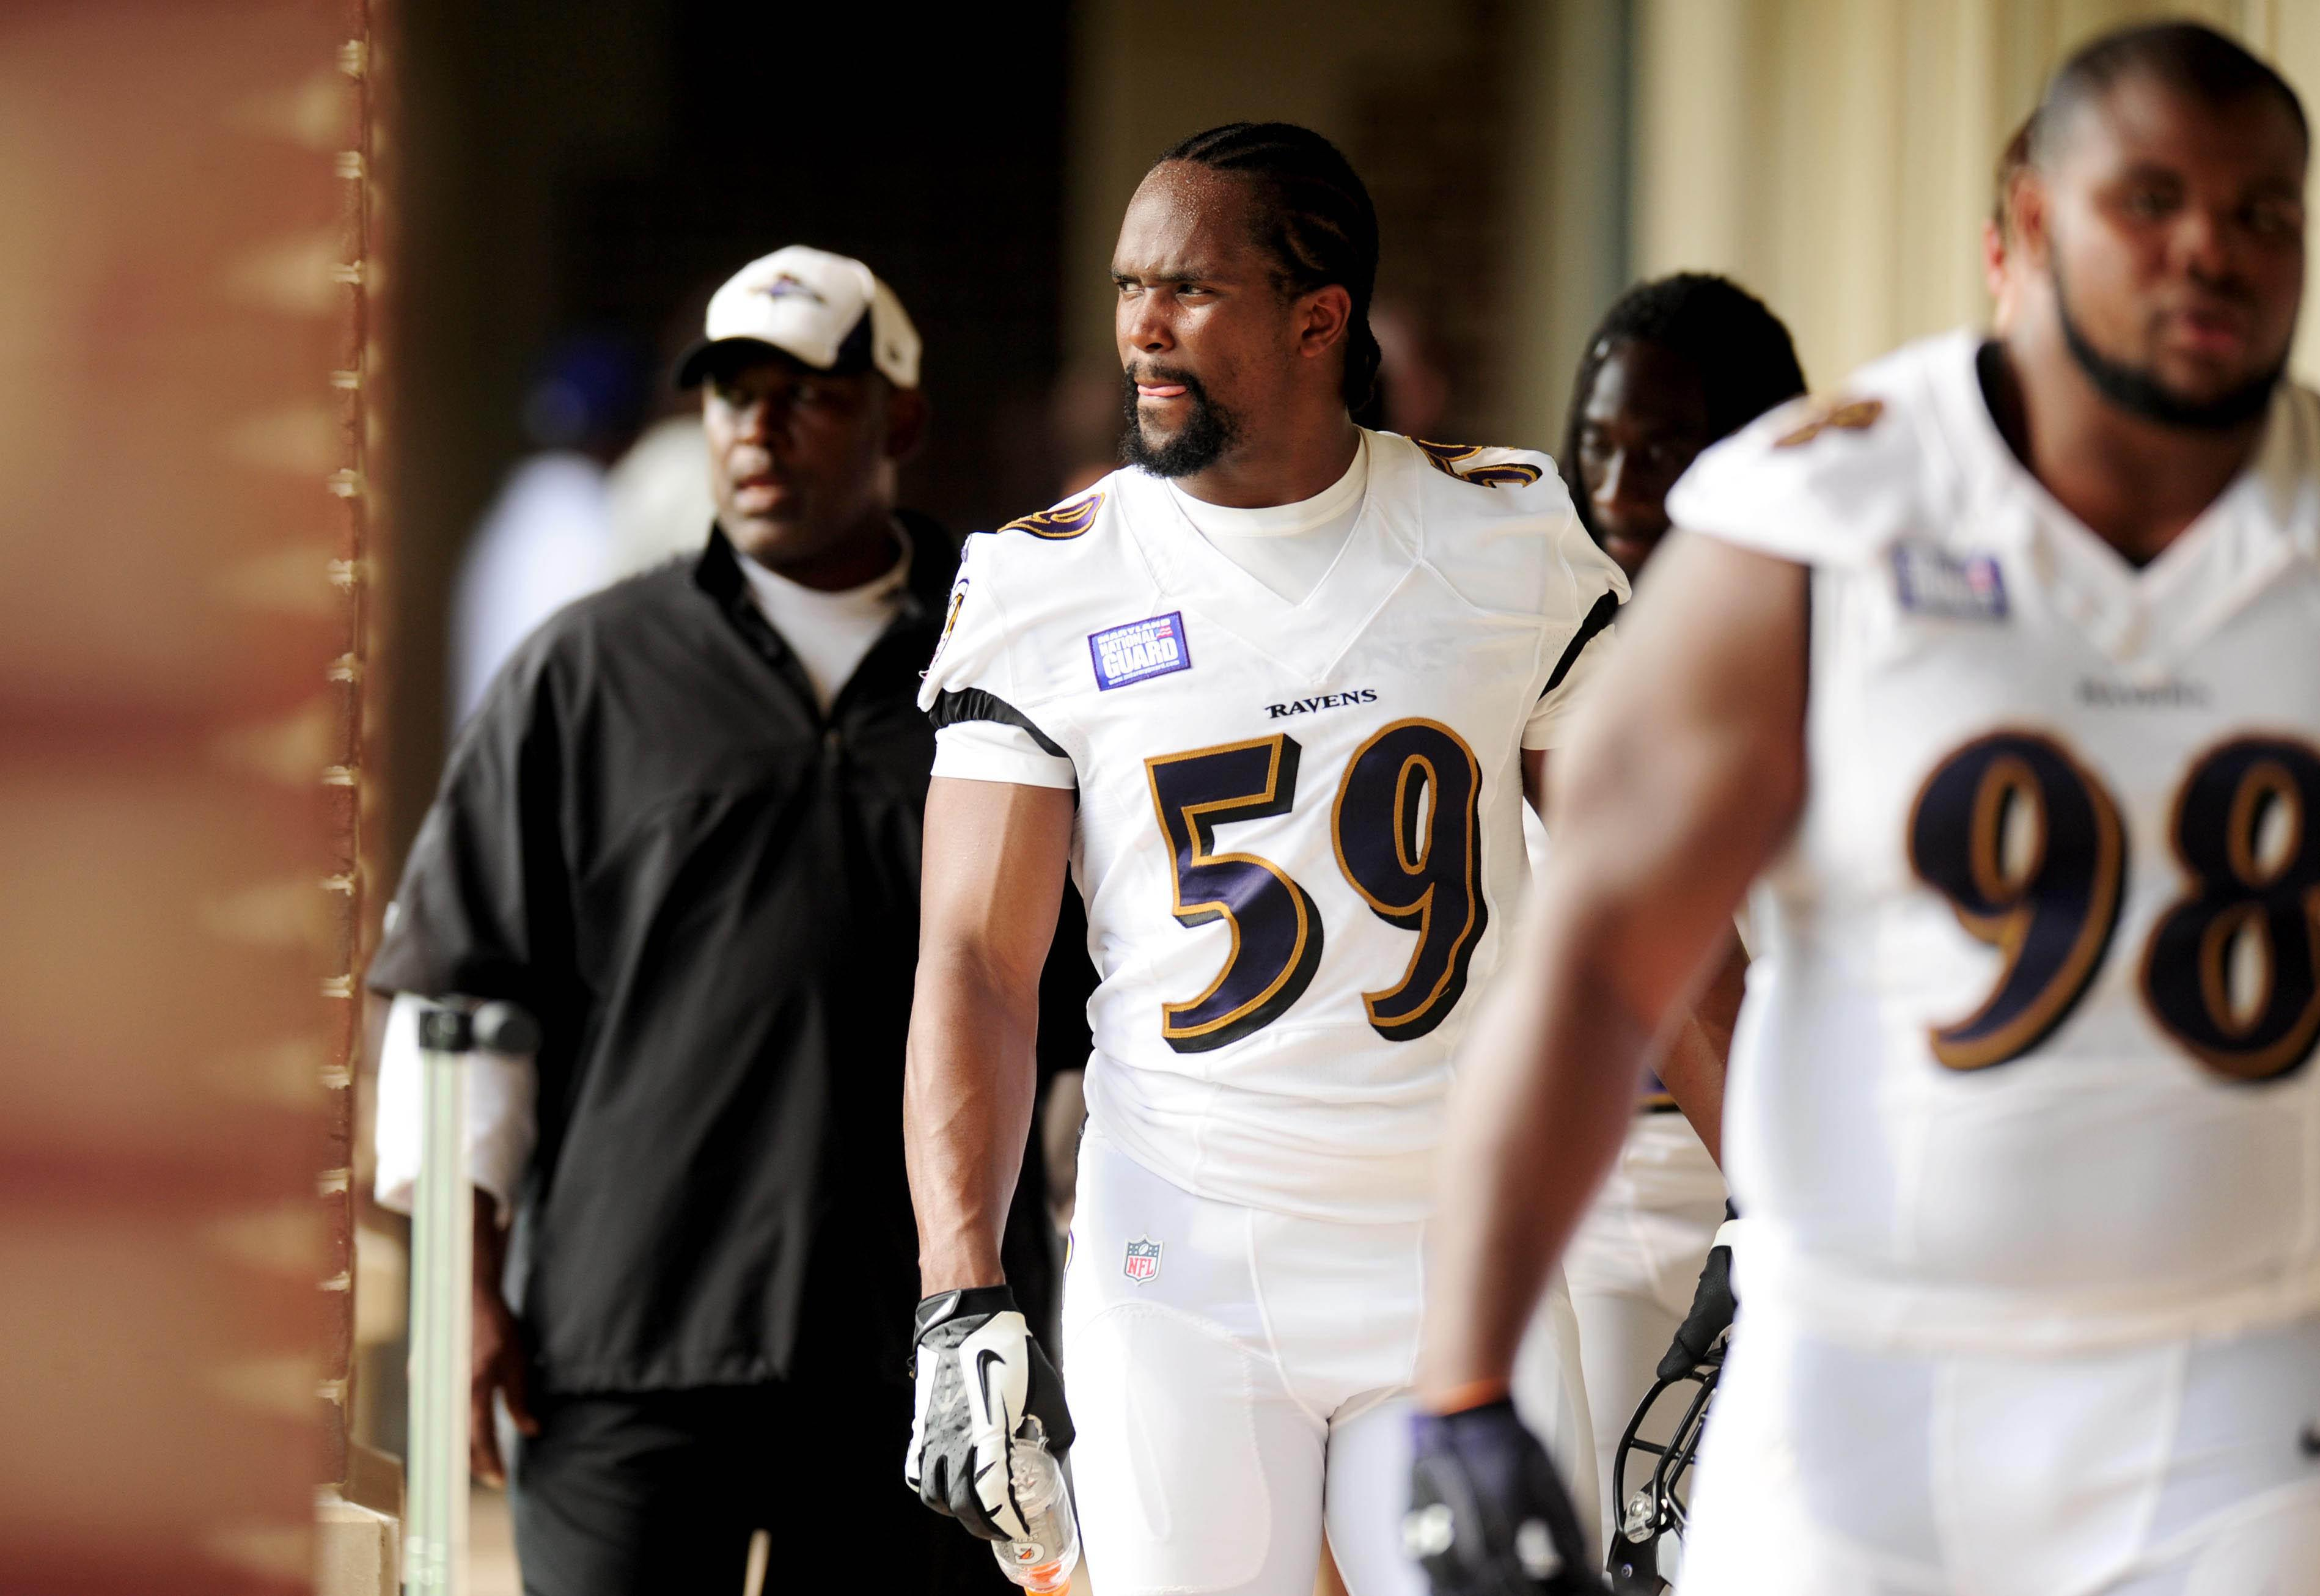 Former Ravens 2nd round pick fights to secure roster spot